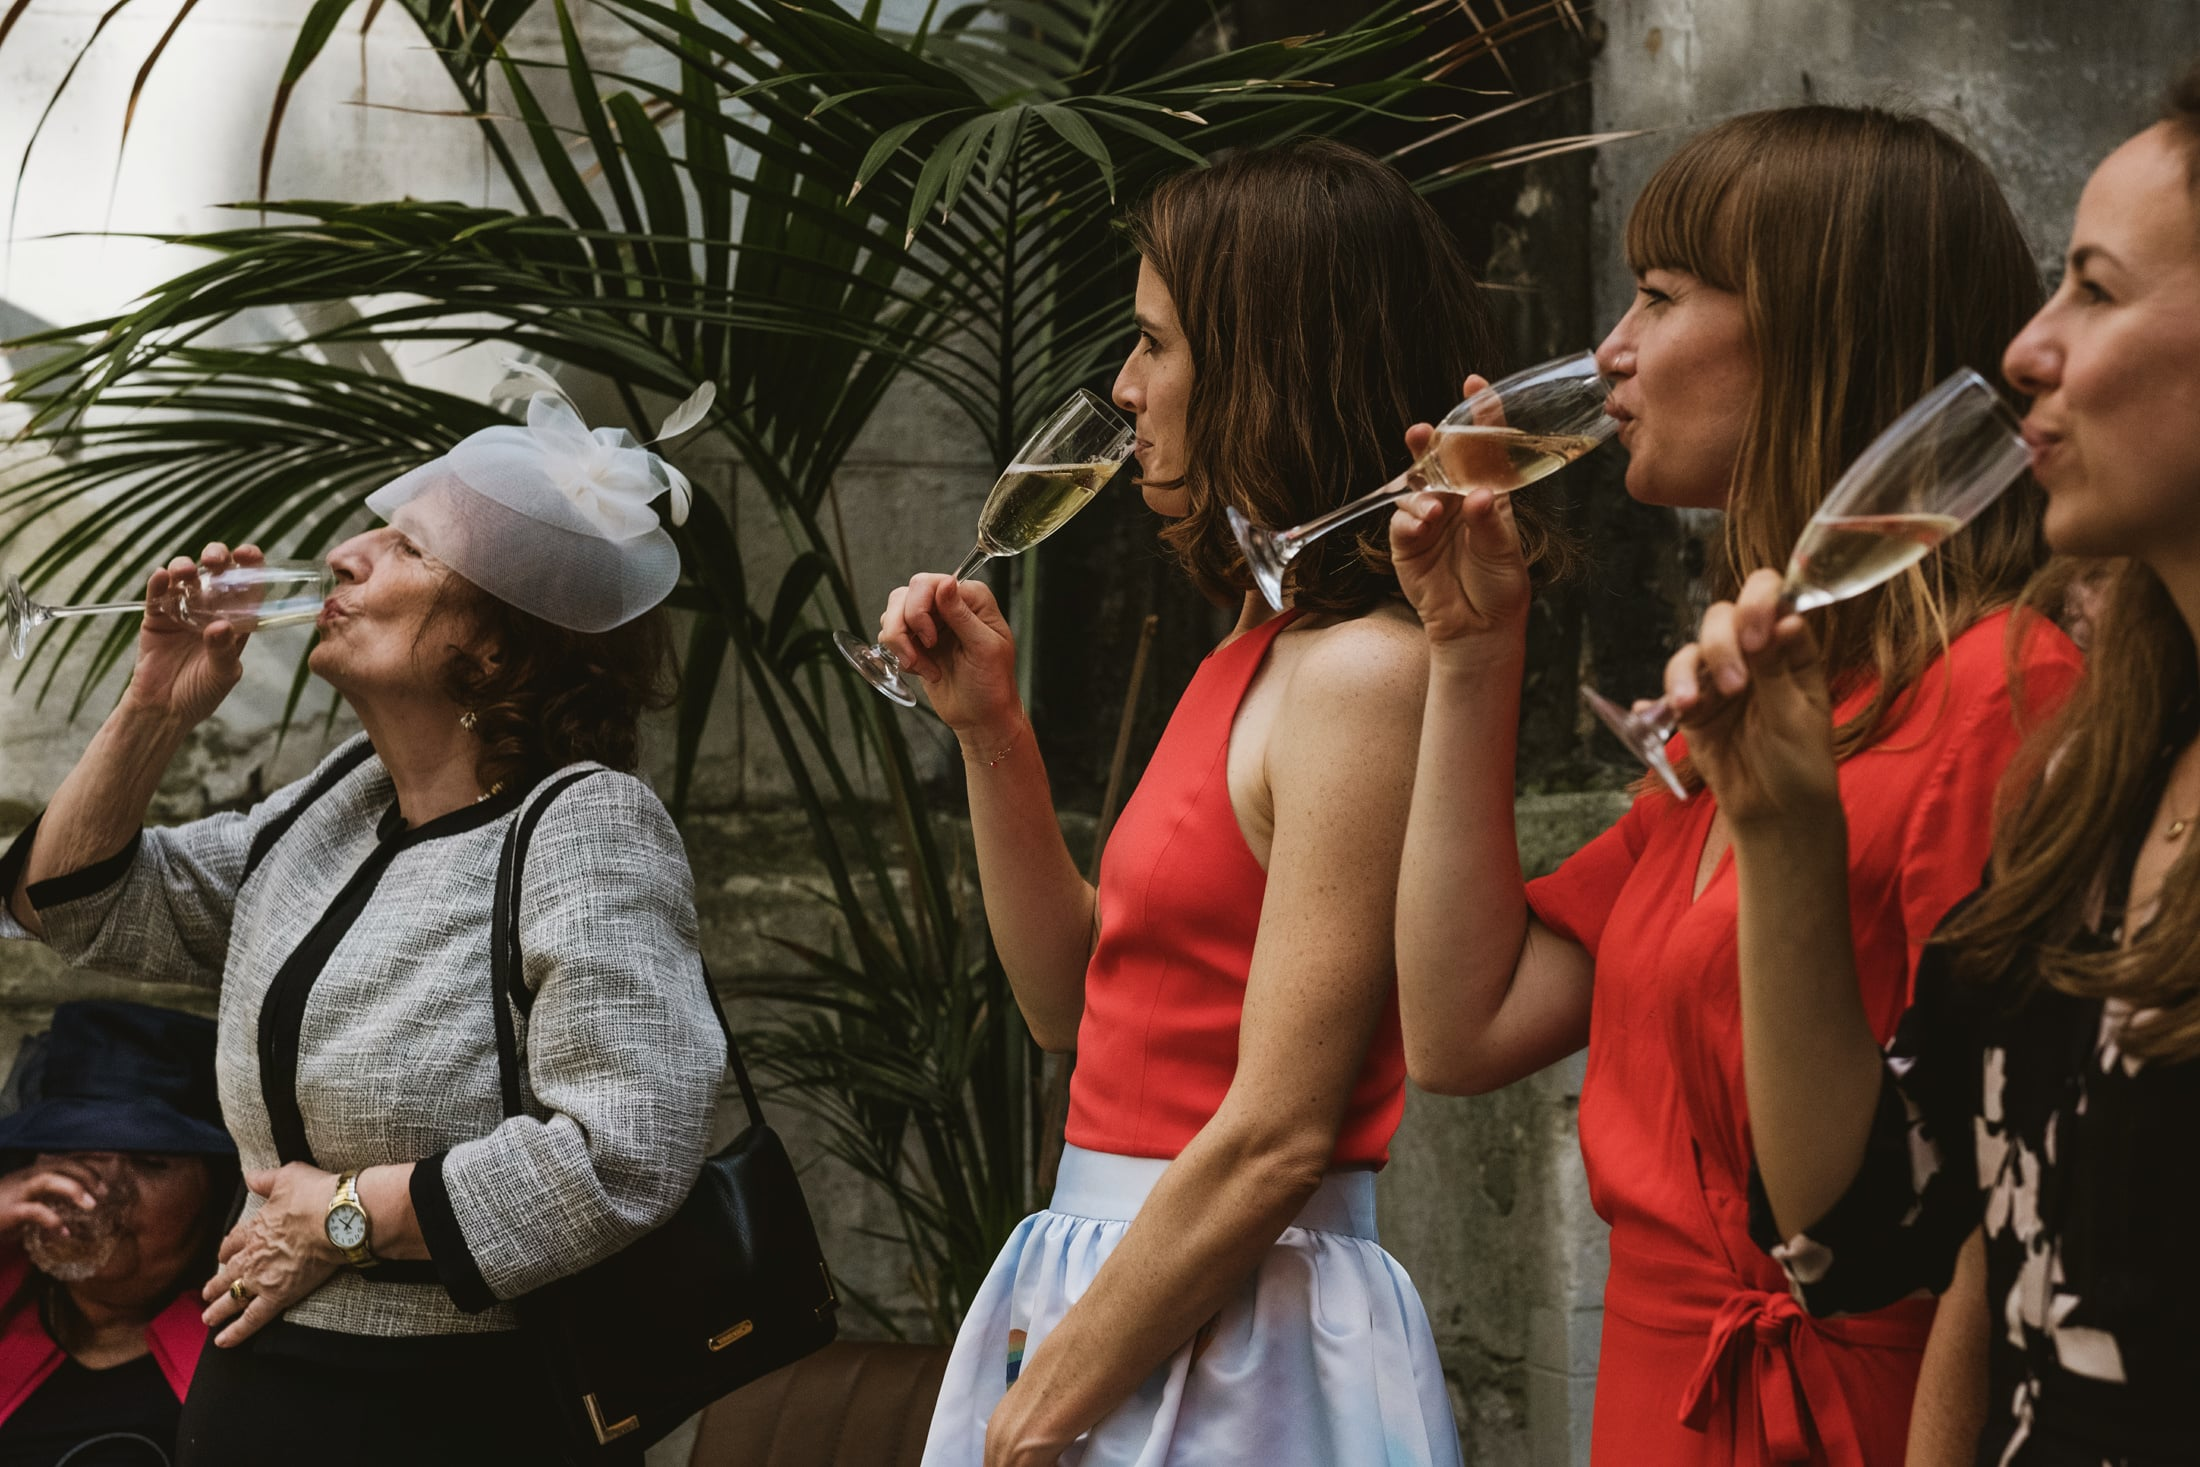 four female wedding guests face the same direction as they simultaneously take a drink of champagne